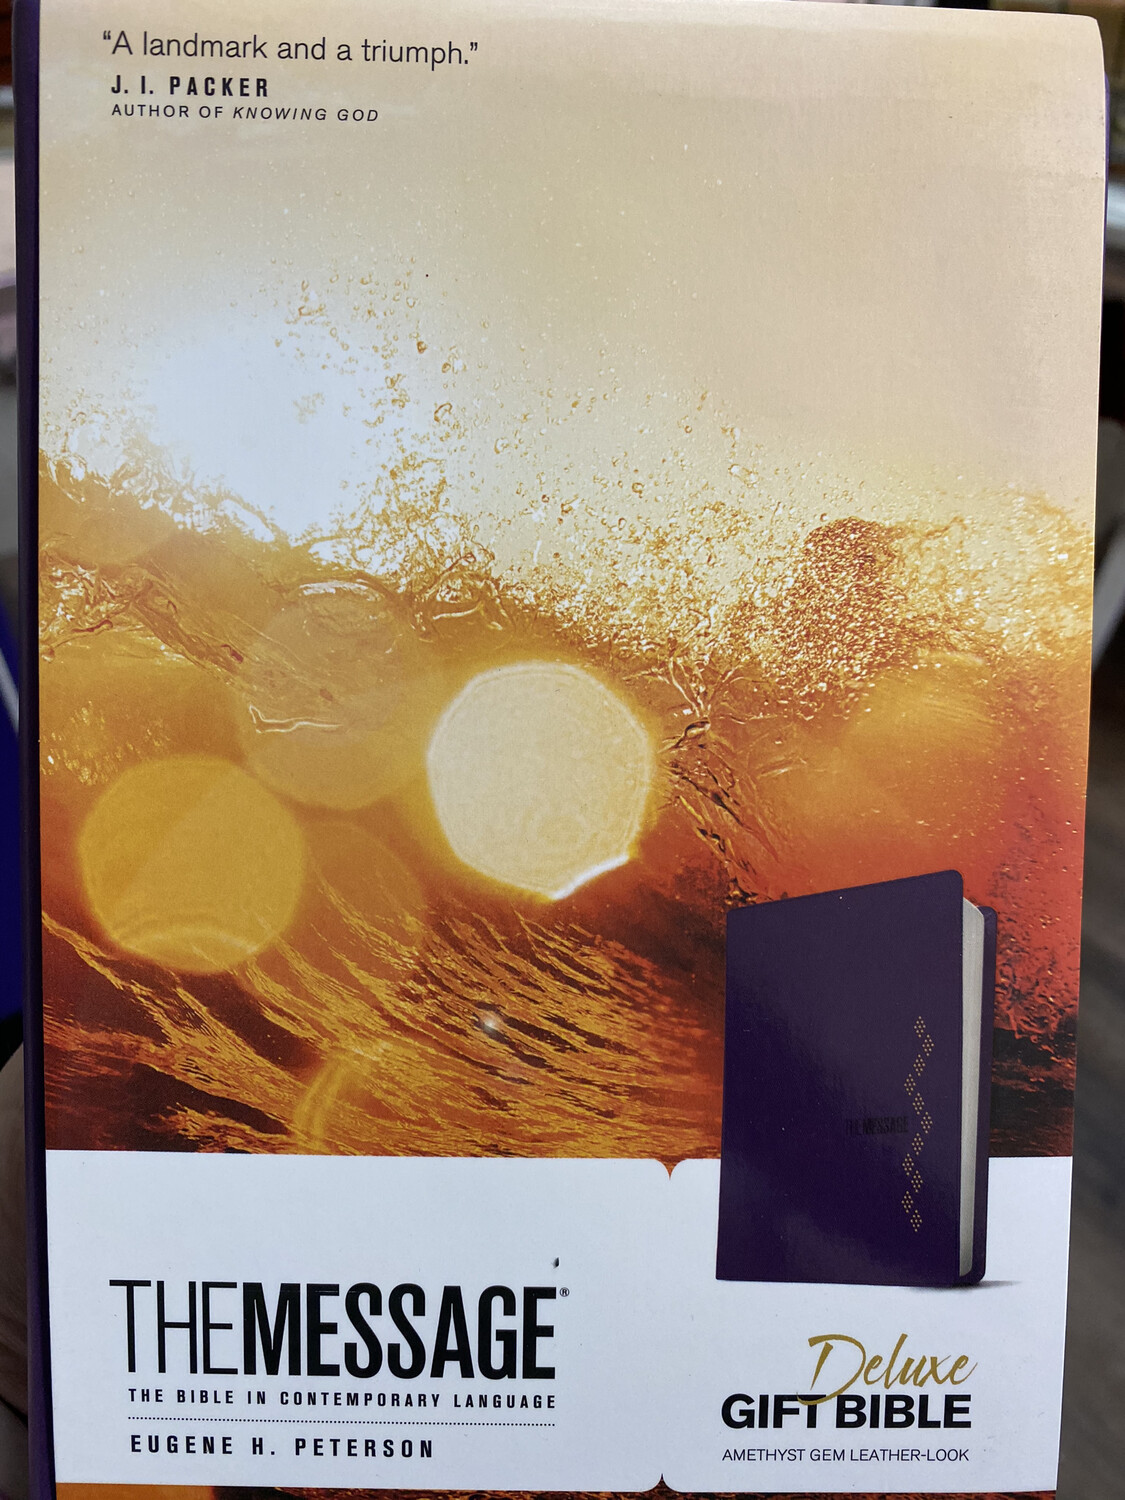 THE MESSAGE Deluxe Gift Bible, Amethyst Gem Leather Look